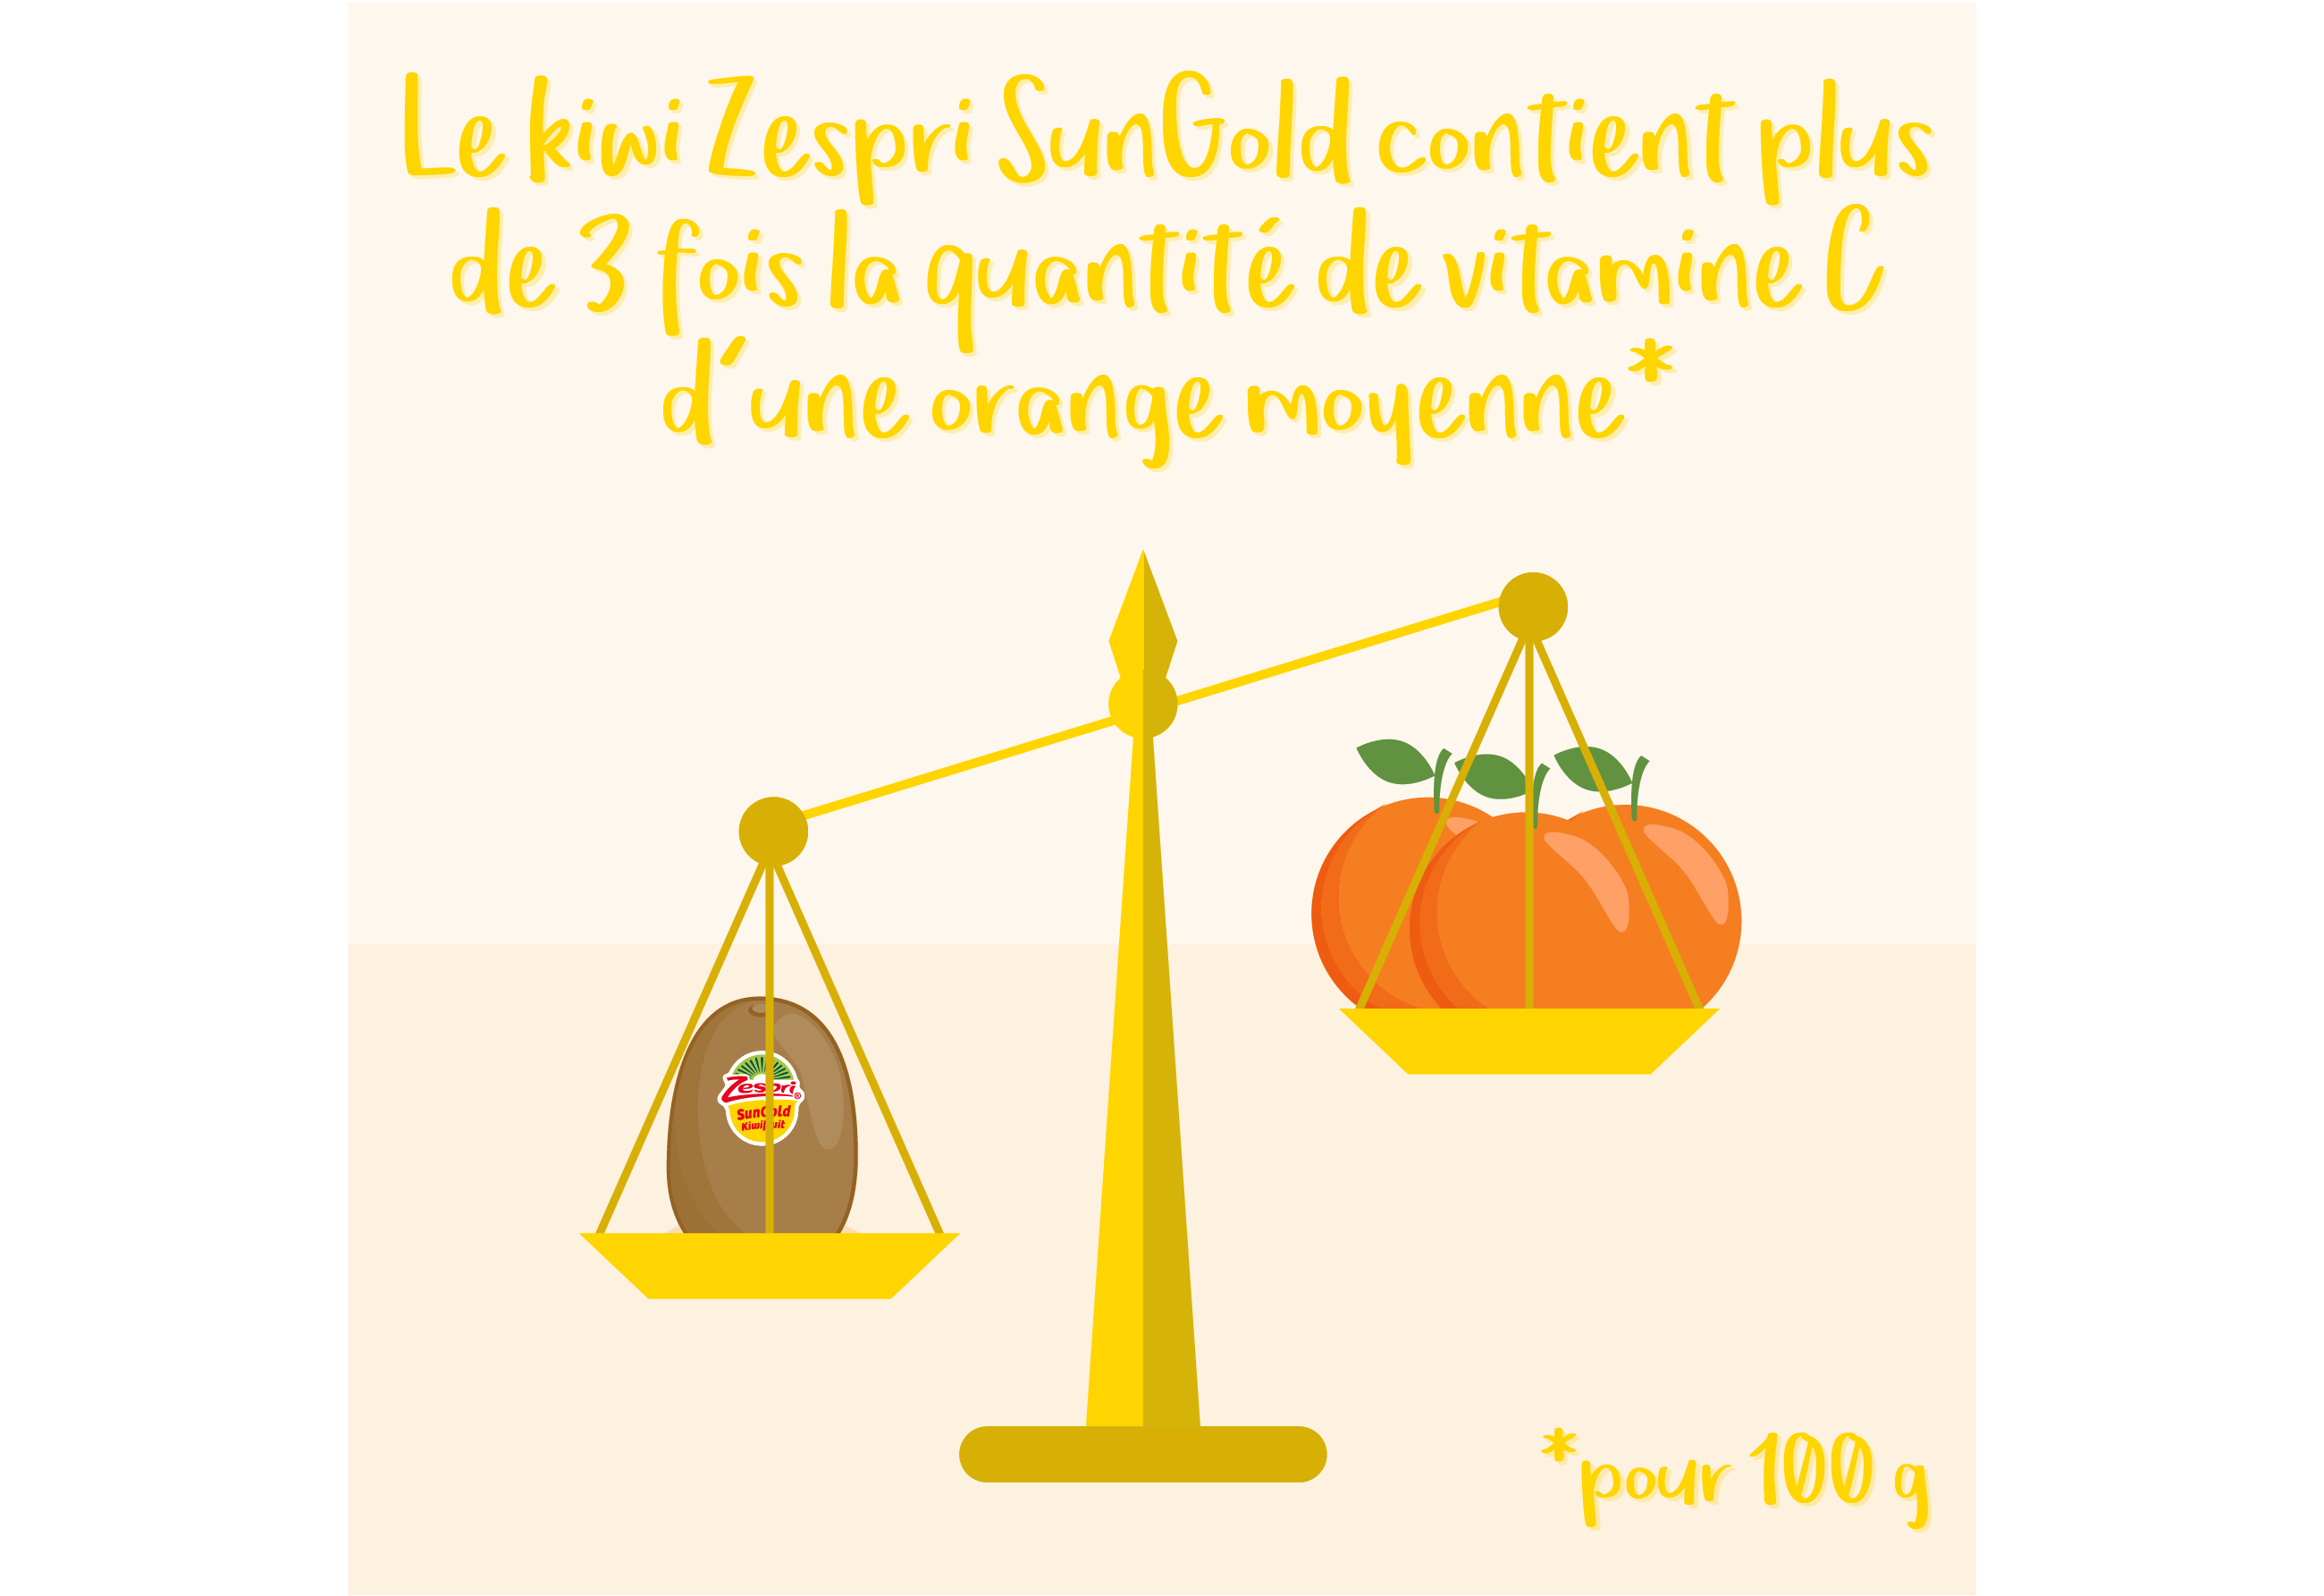 Riches_en_nutriments_tels_que_la_vitamine_C